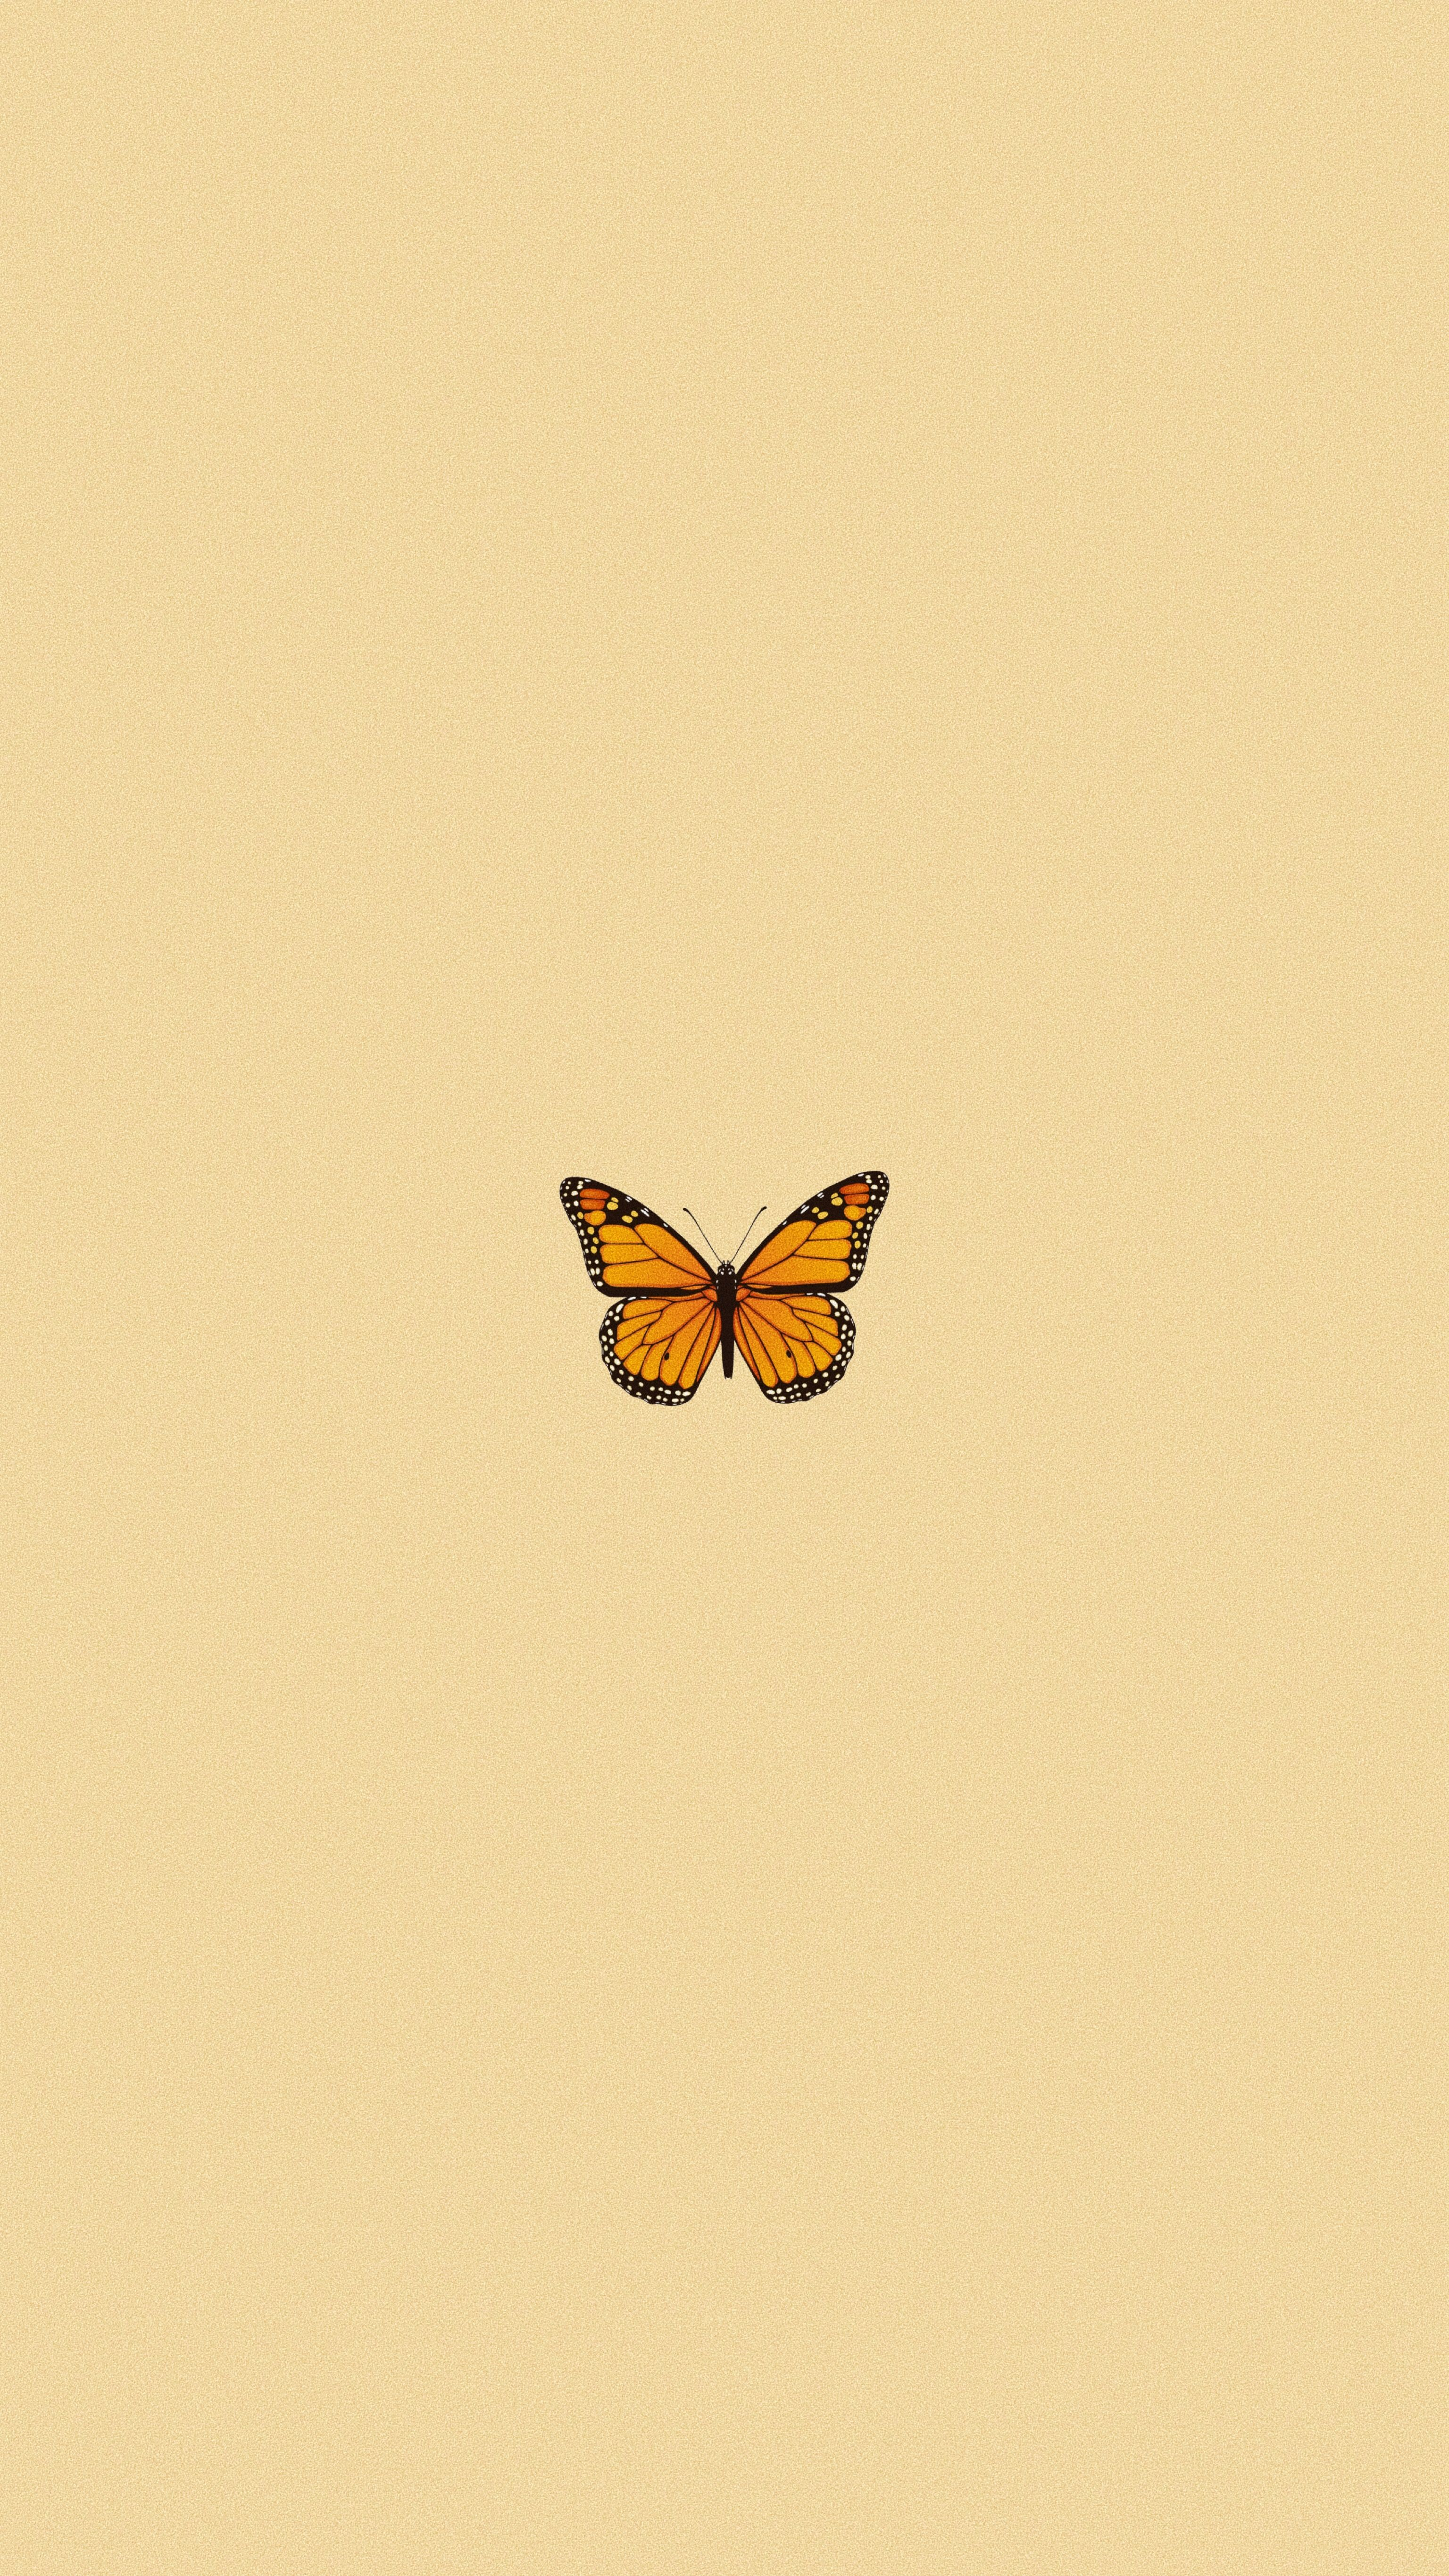 Aesthetic Simple Butterfly Wallpapers Wallpaper Cave